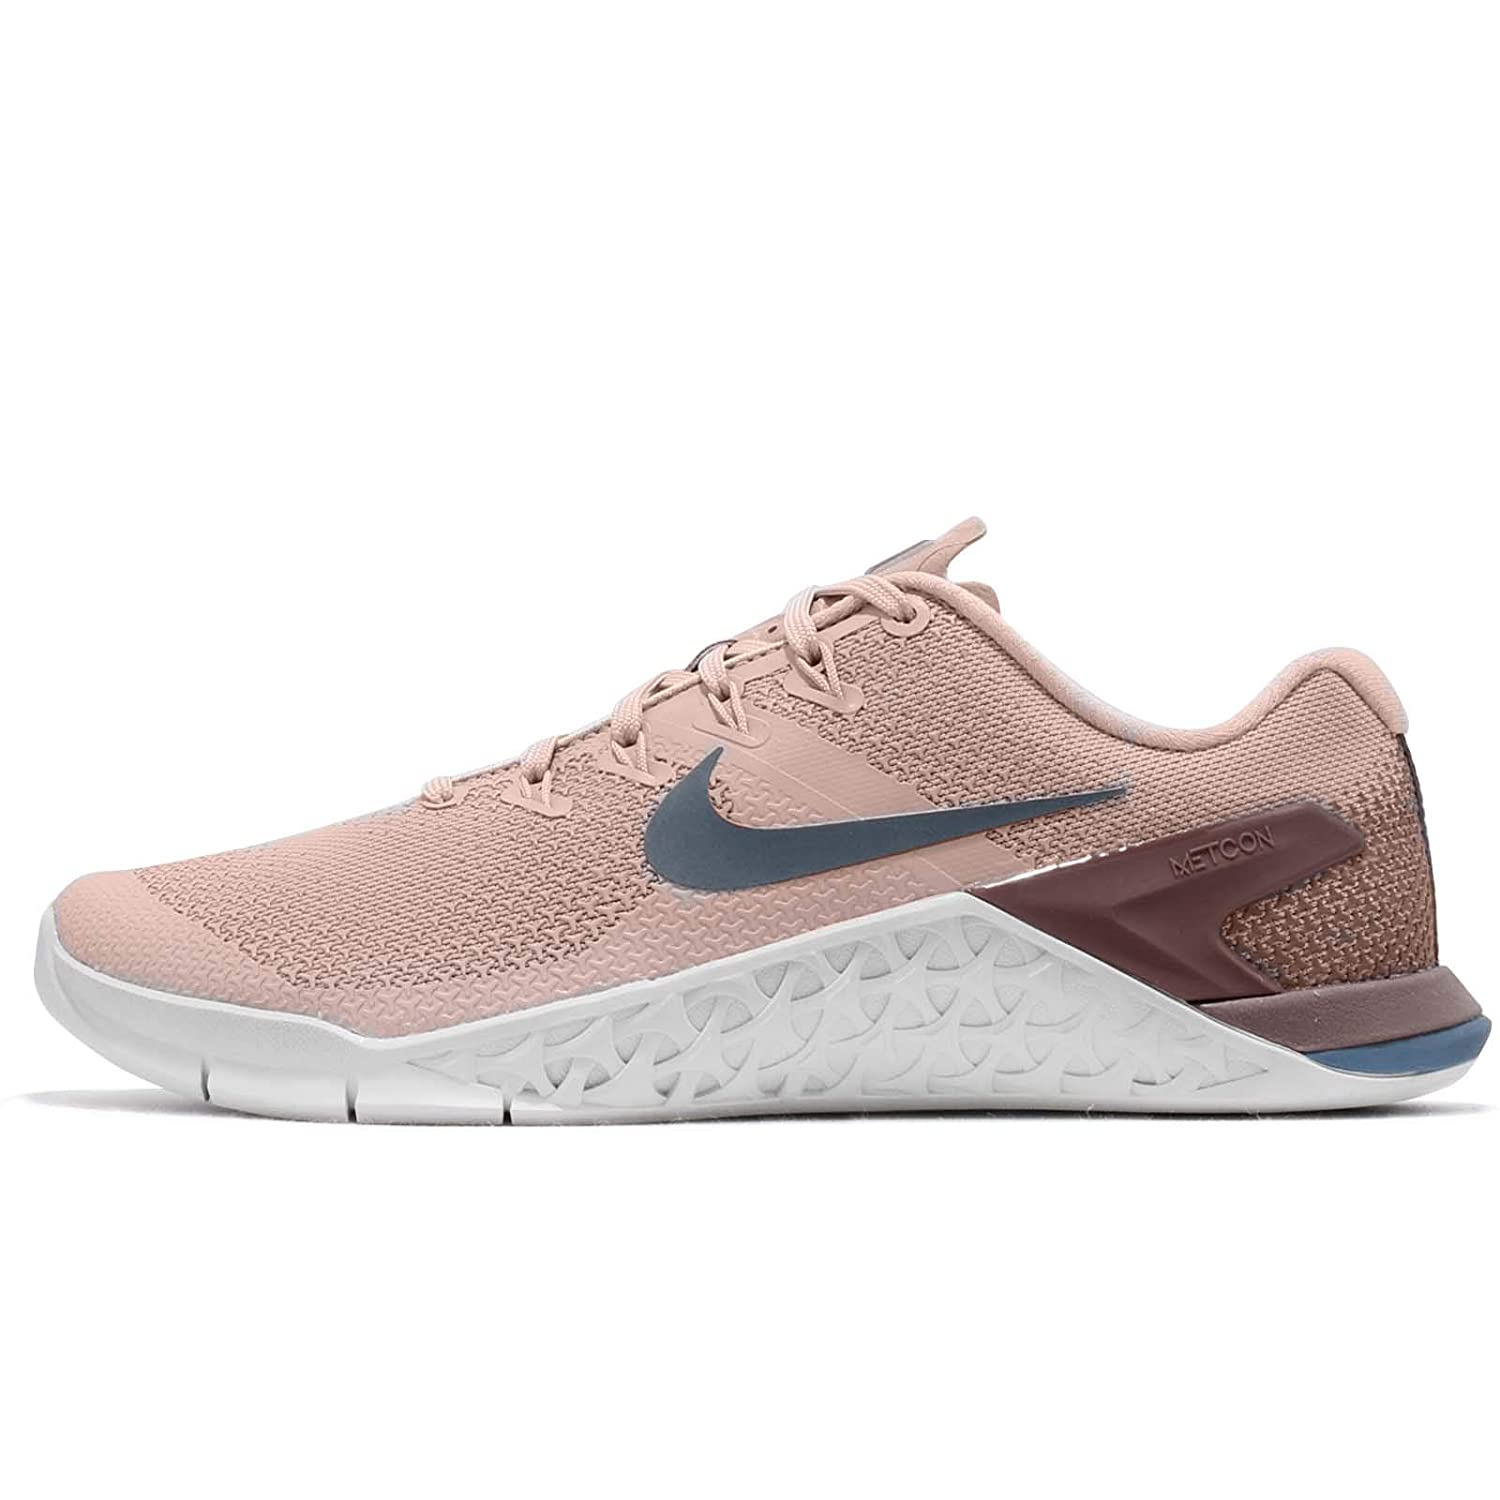 official photos a8f4f 939ed Amazon.com   Nike Metcon 4 Womens Running Shoes   Athletic